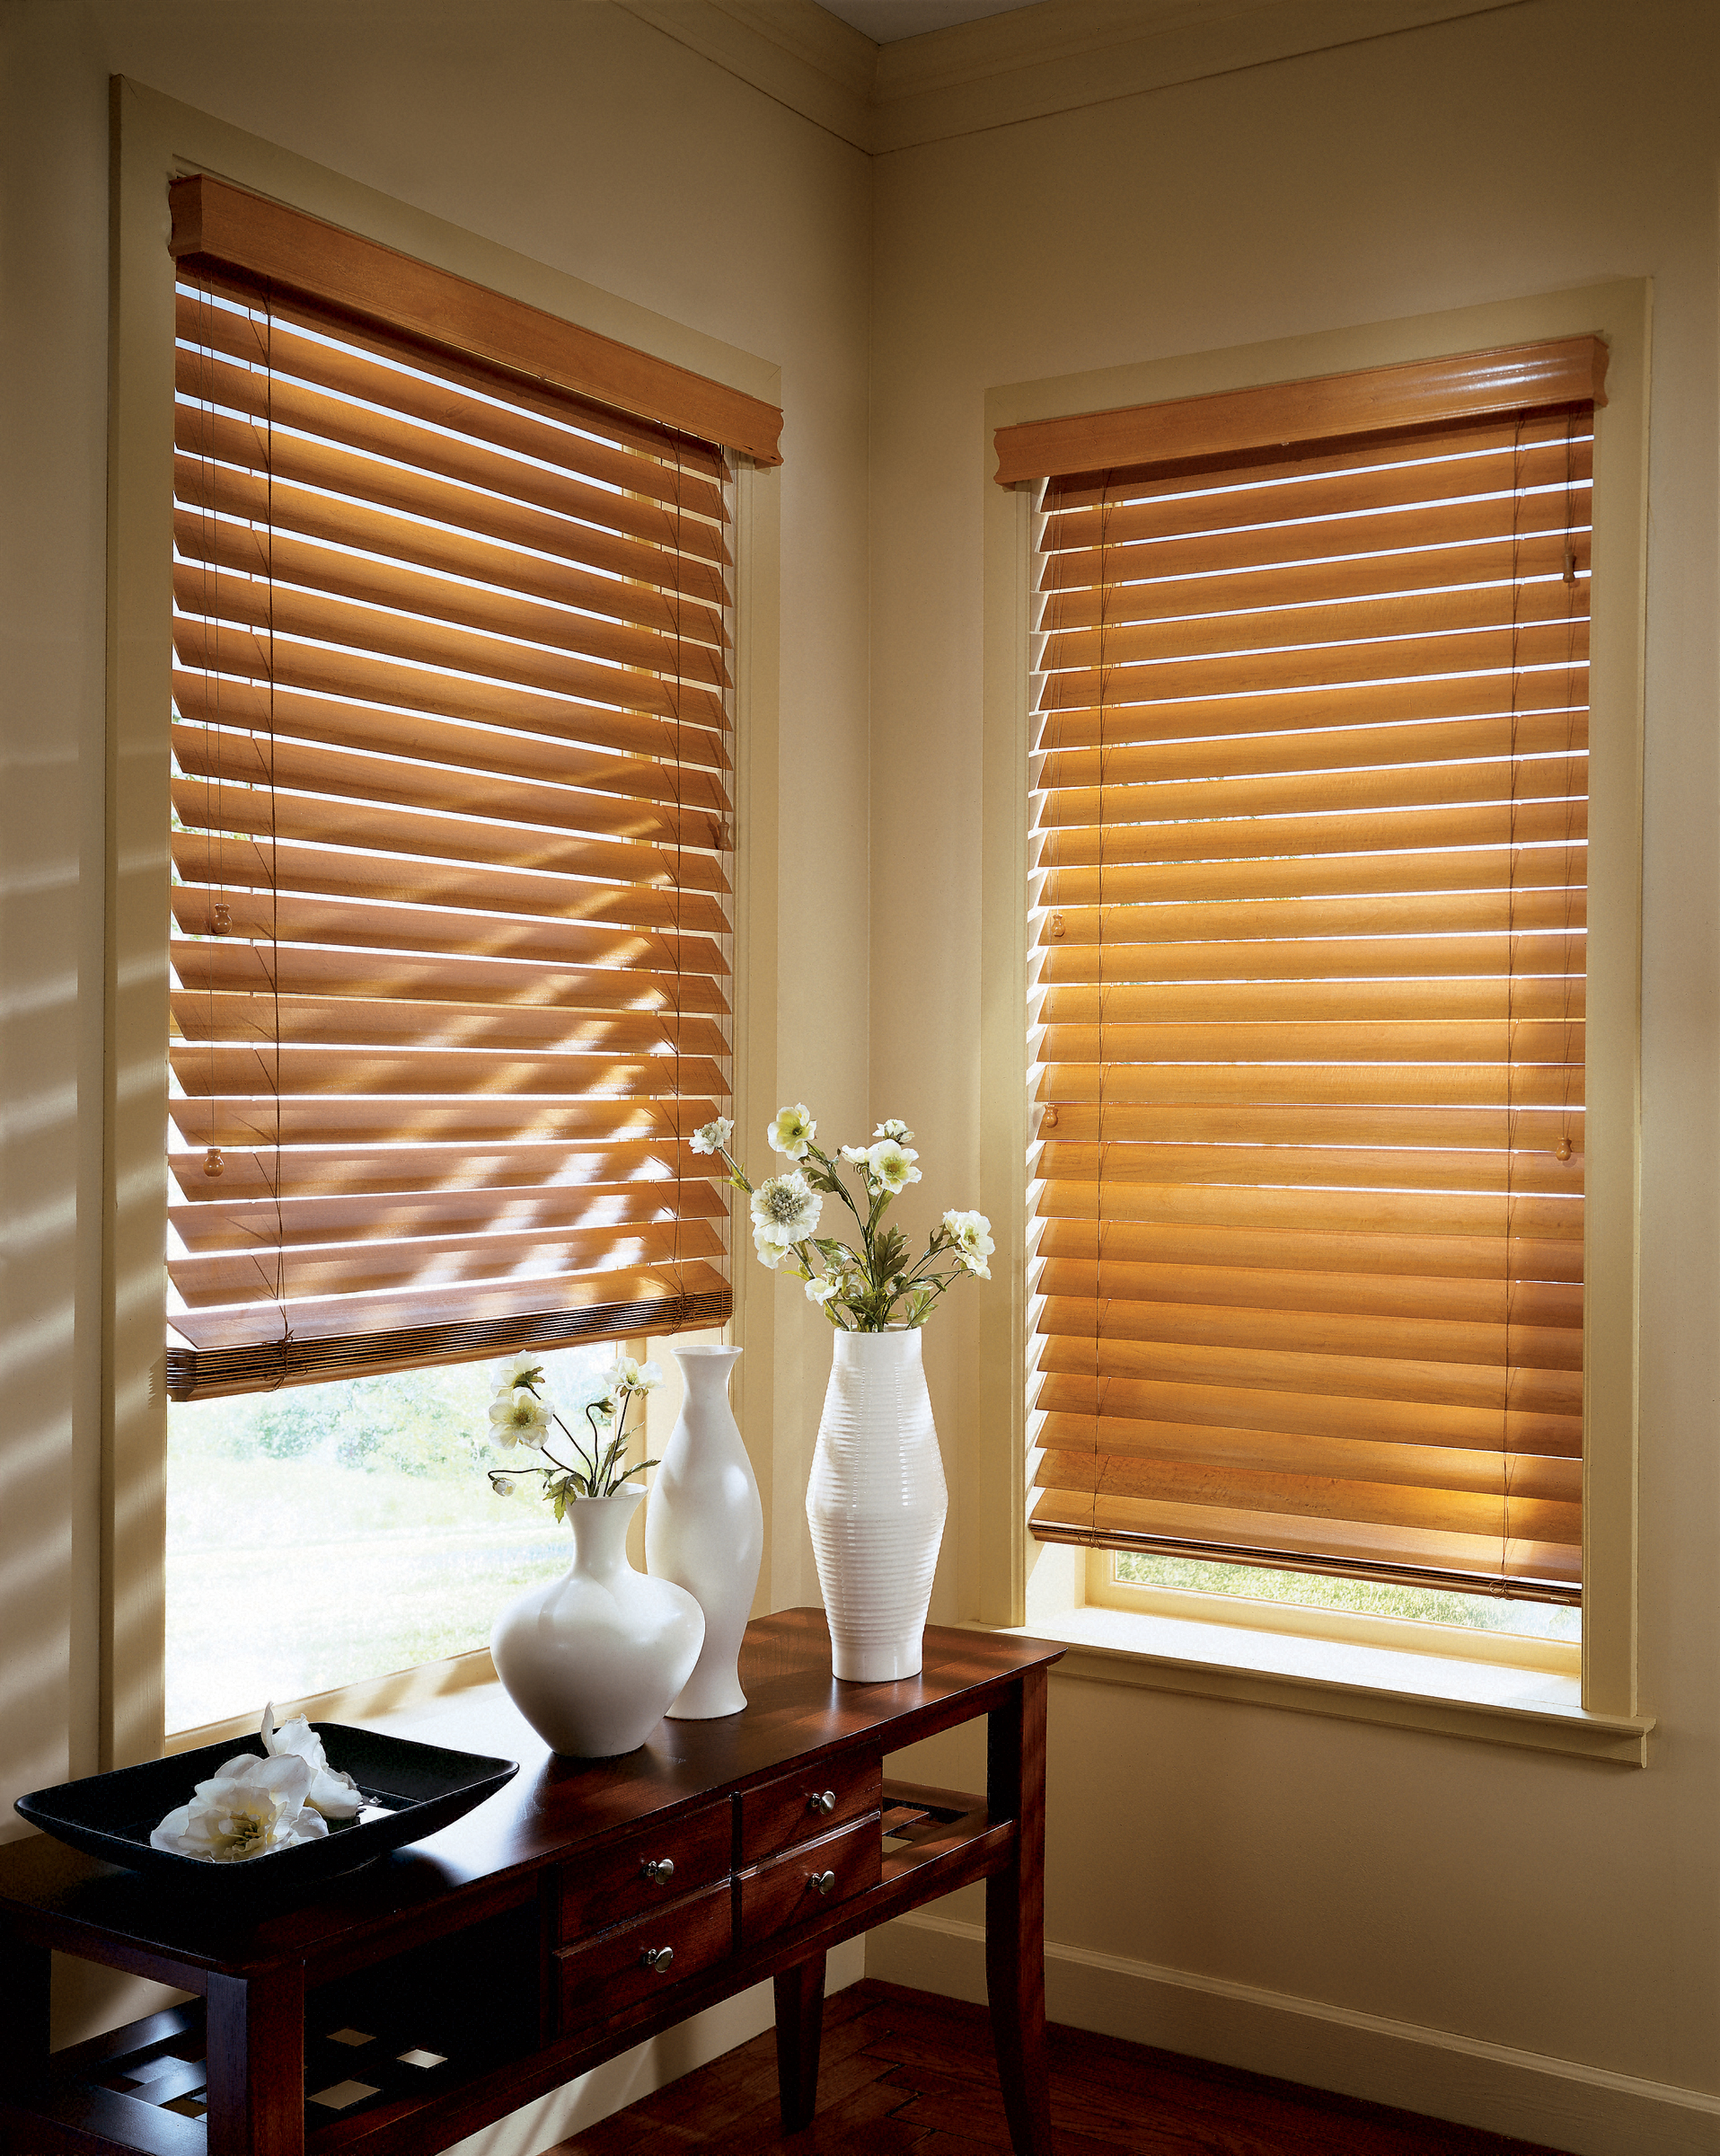 p creechurch go luxury native us myhomedesign blinds city locations win at a to weekend